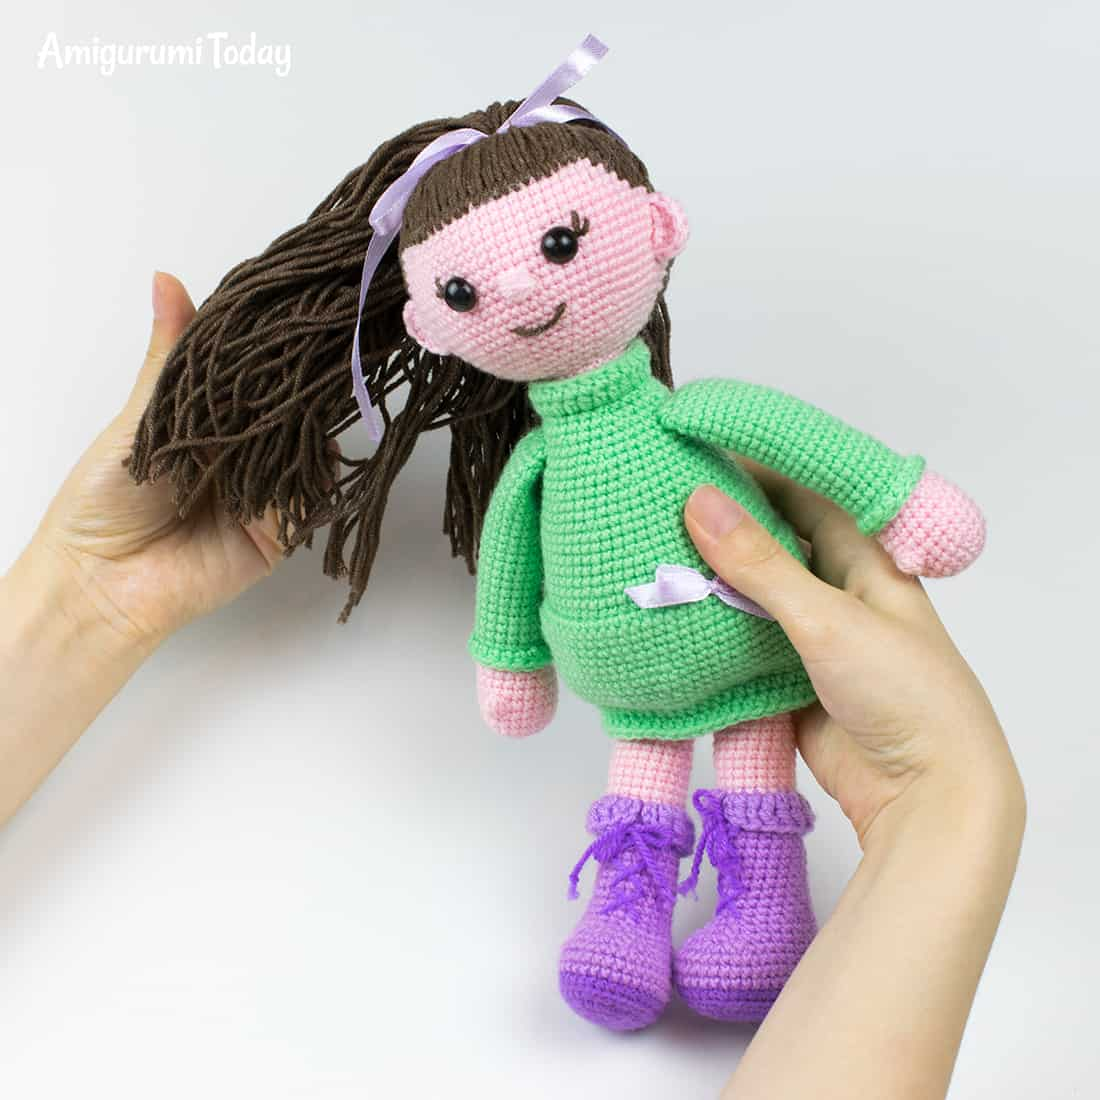 Lulu Doll crochet pattern by Amigurumi Today